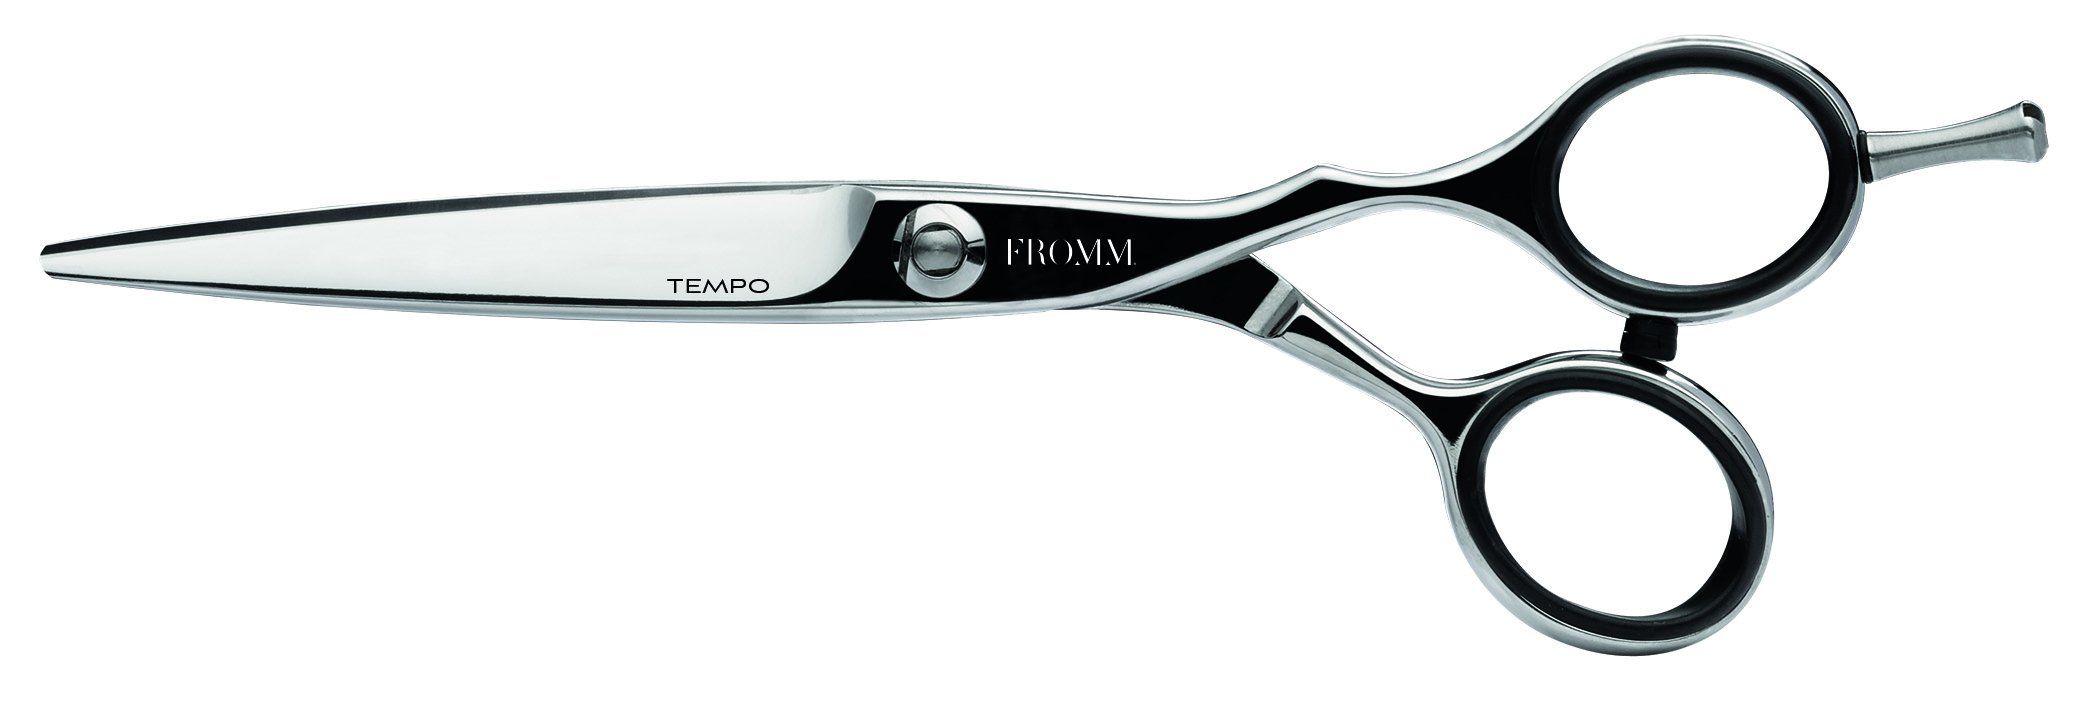 Fromm Tempo 5.75 Inch Shear, FCS007